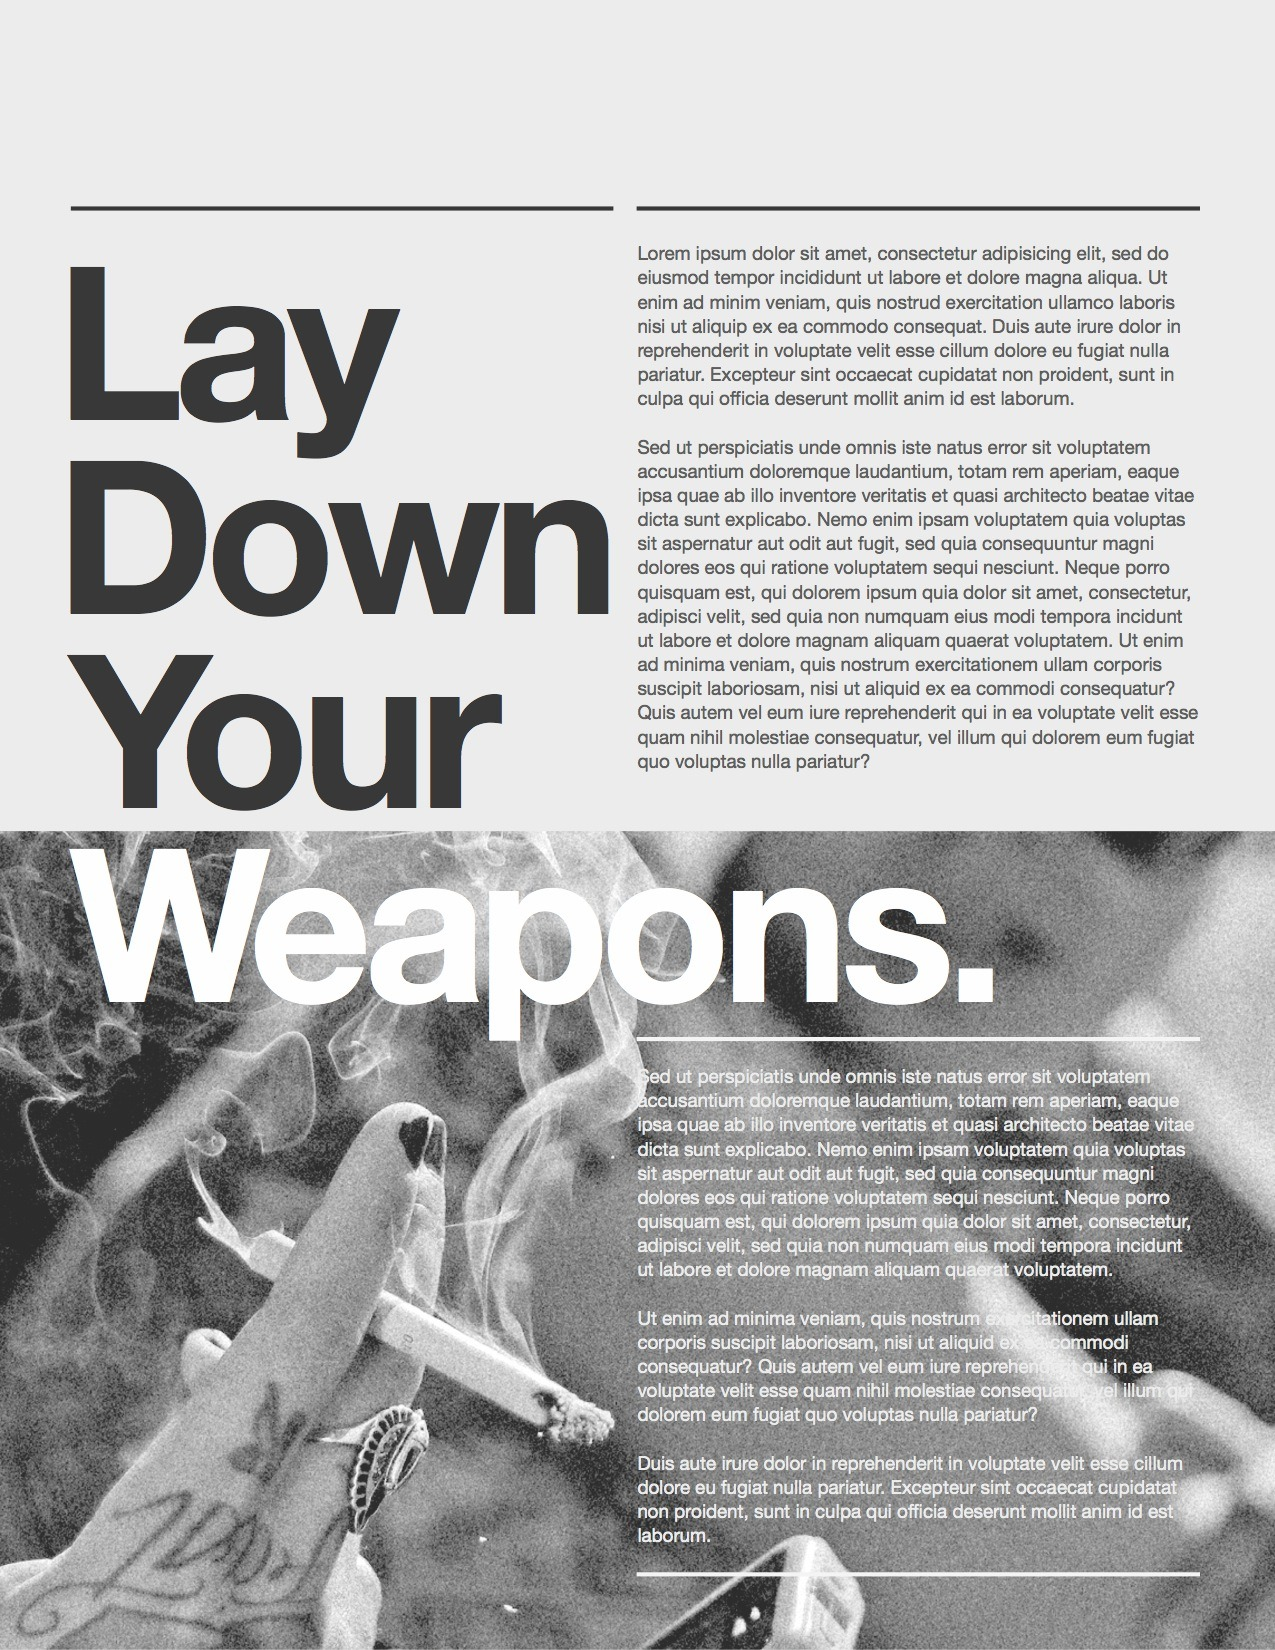 LAY DOWN YOUR WEAPONS Been working on gridded typography layouts all day. There aren't many things sexier than a bold san serif on a smooth baseline. These are sneak peeks at my big personal project for April, hopefully it will be something that everyone enjoys when it's done.